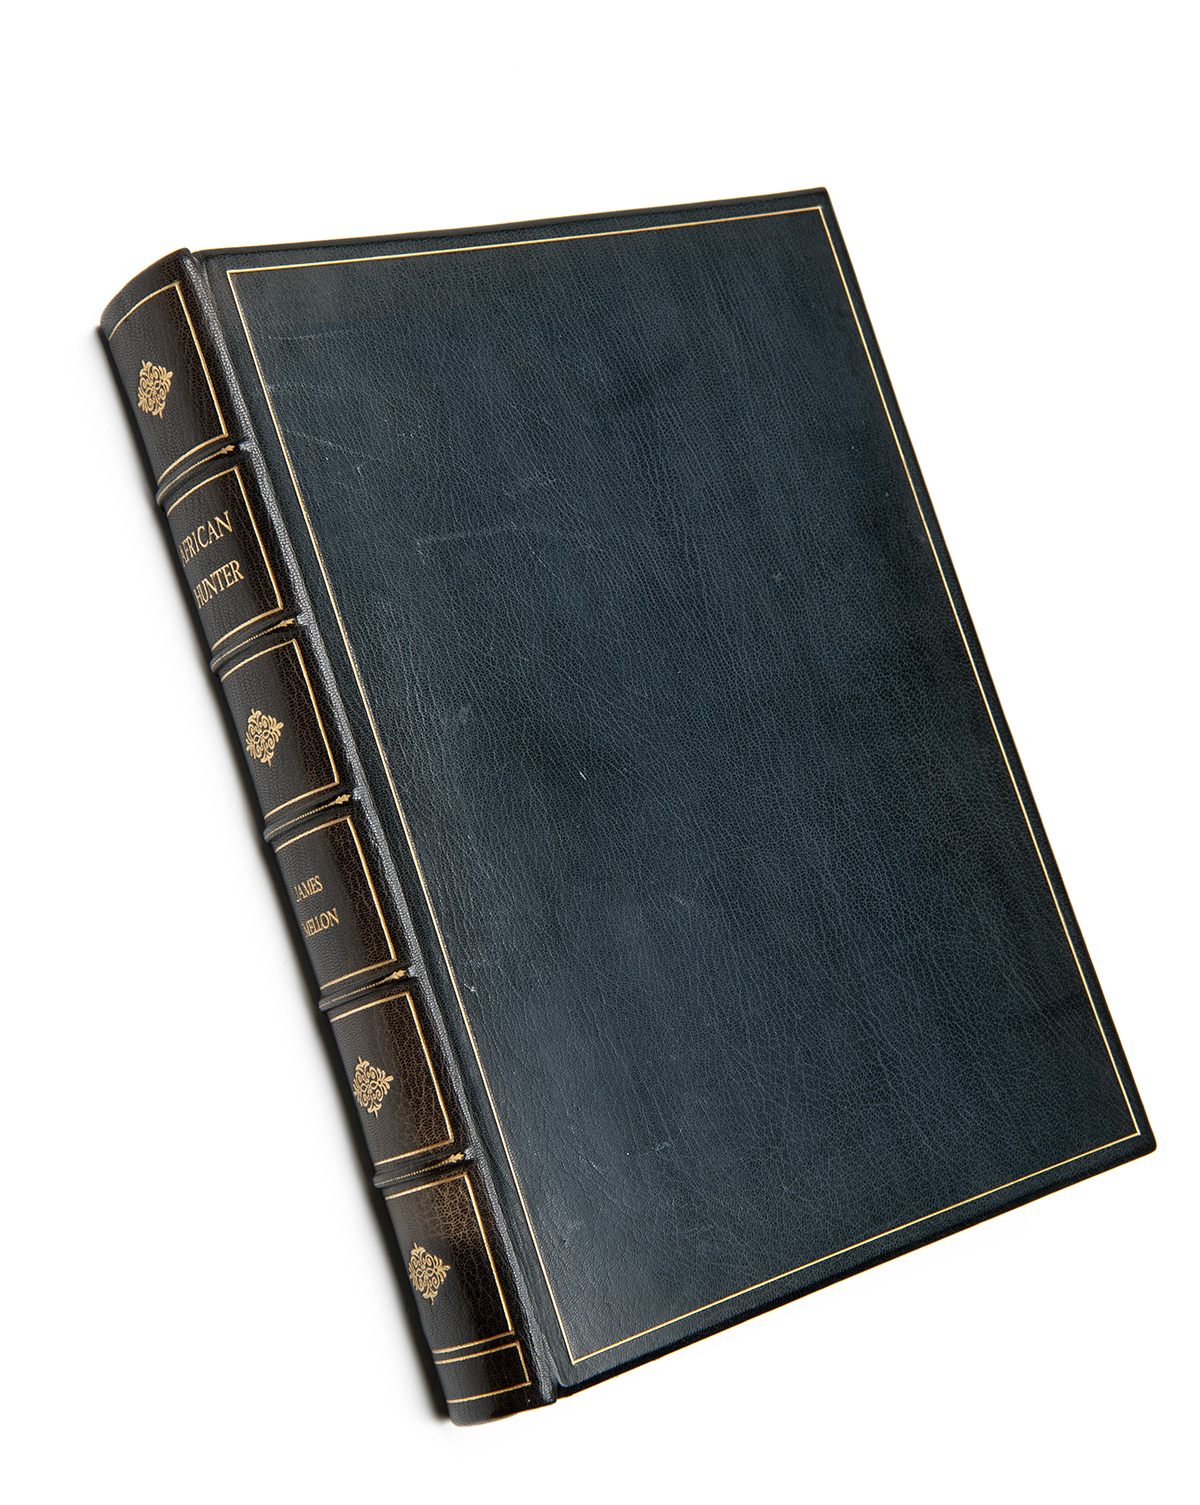 Lot 1 - JAMES MELLON 'AFRICAN HUNTER' 1st Edition custom leather bound to museum standard by Sangorski &